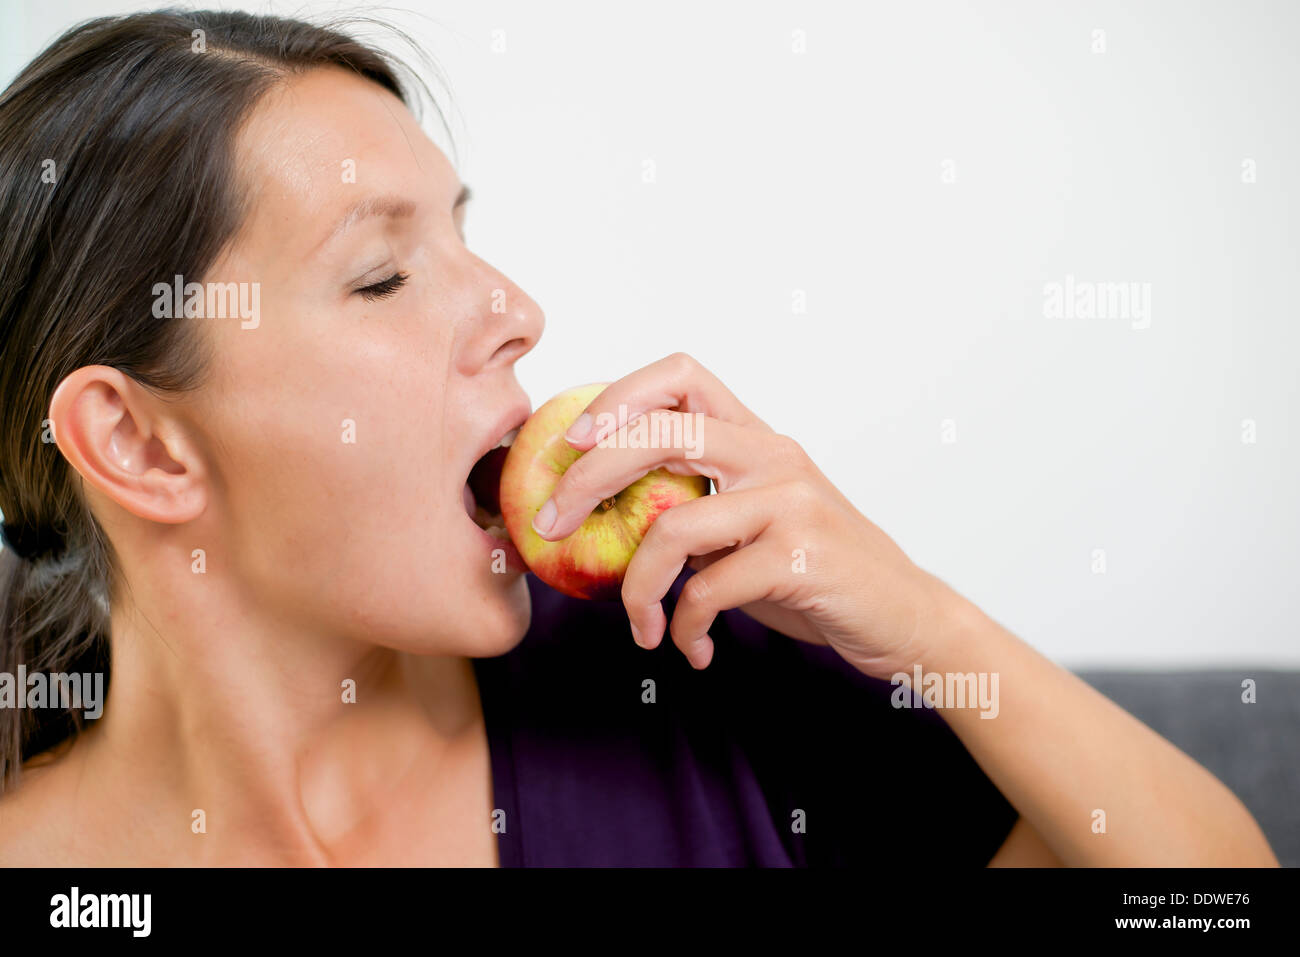 woman is frustratedSide view of an attractive young woman biting into a fresh juicy red apple as she follows a healthy diet and - Stock Image